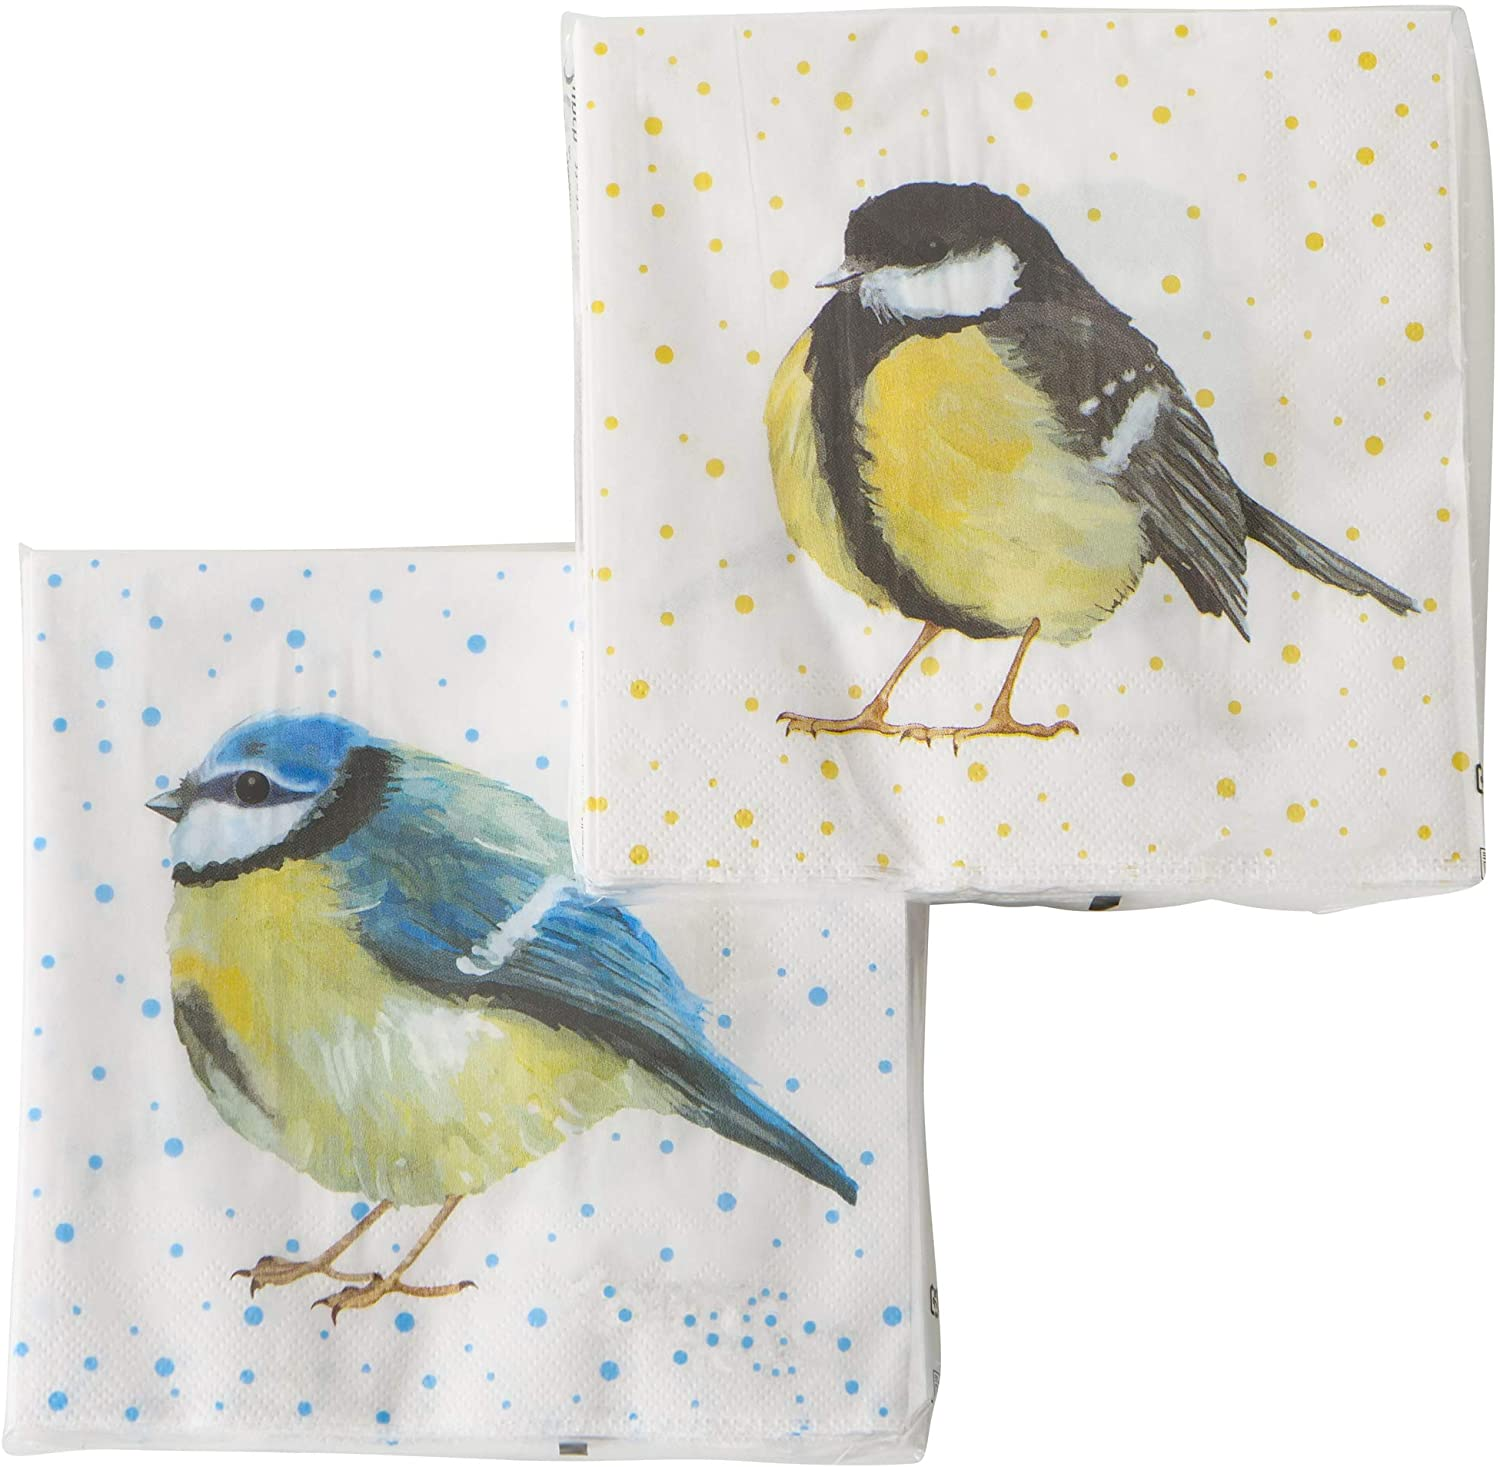 WHW Whole House Worlds Yellow Belly Chickadee Bird Napkins, 2 Packs of 20, 3 Ply Paper, Luncheon Size, 6.75 Inches